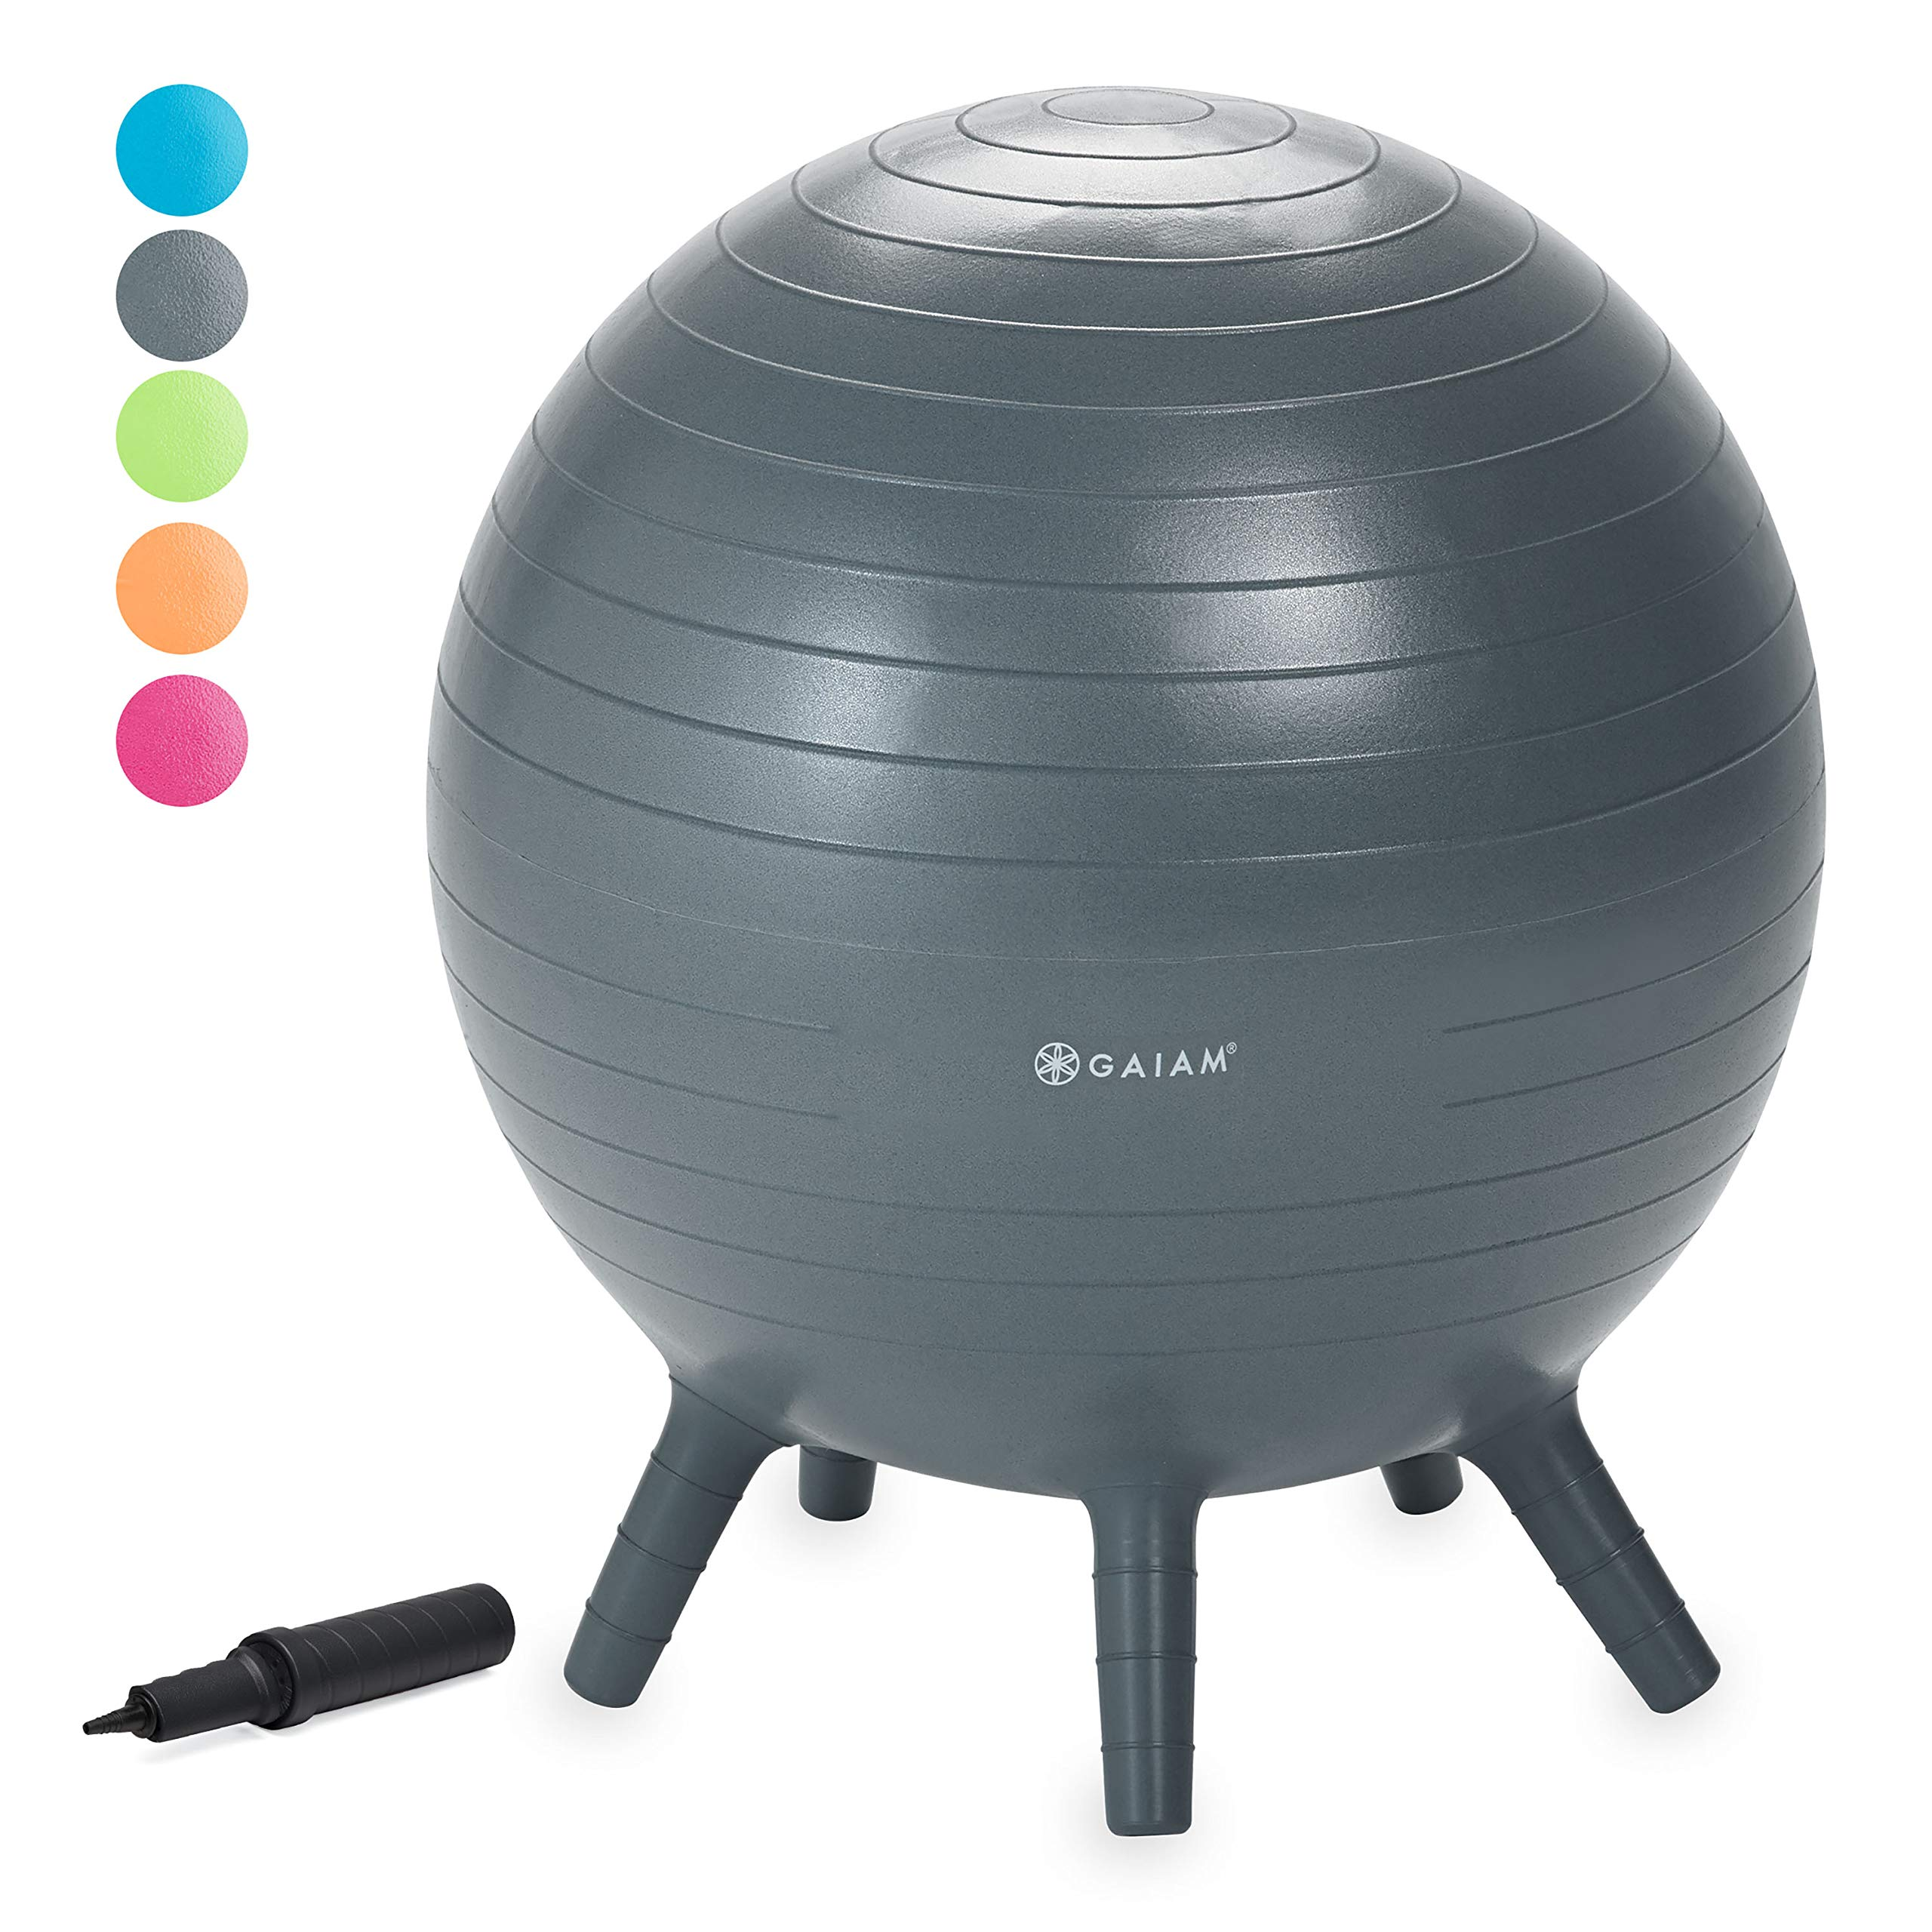 Gaiam Kids Stay-N-Play Children's Balance Ball - Flexible School Chair, Active Classroom Desk Seating with Stay-Put Stability Legs, Includes Air Pump, Grey, 45cm